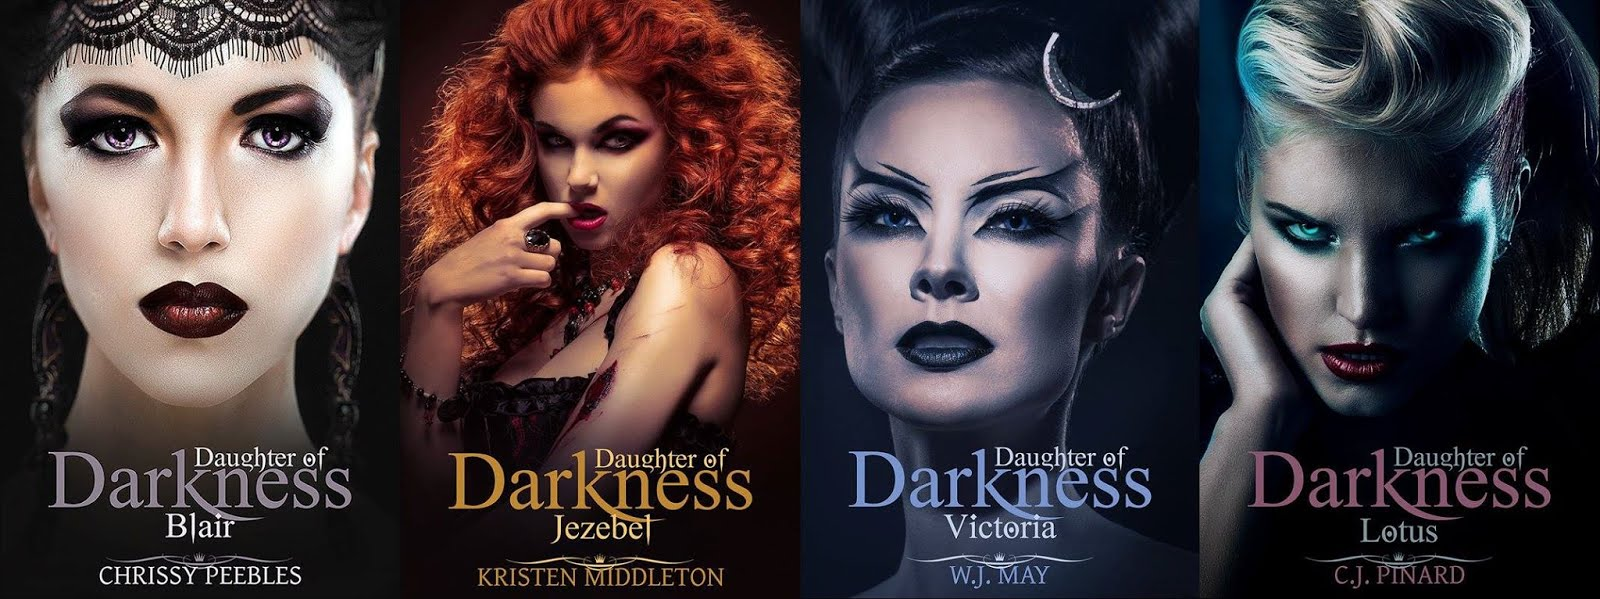 Daughters of Darkness (4 different series written by 4 different authors)